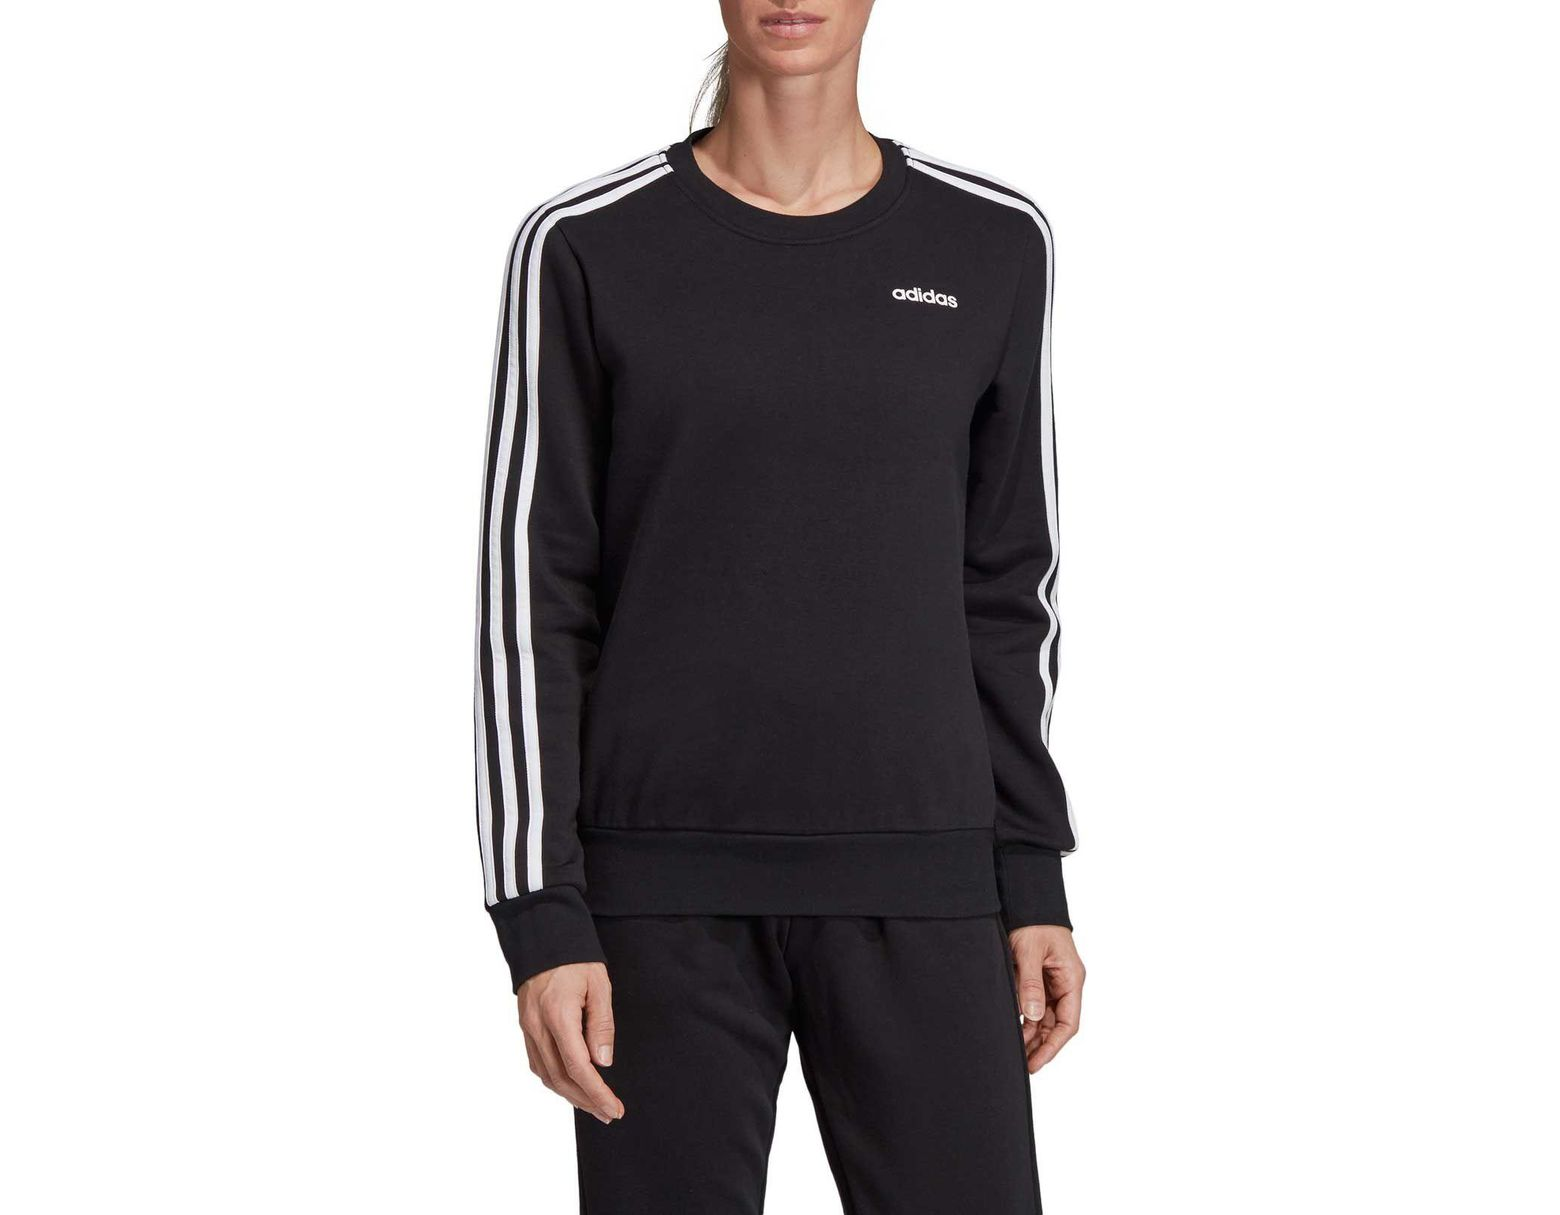 adidas Essentials 3 stripes Crew Neck Sweatshirt in Black Lyst